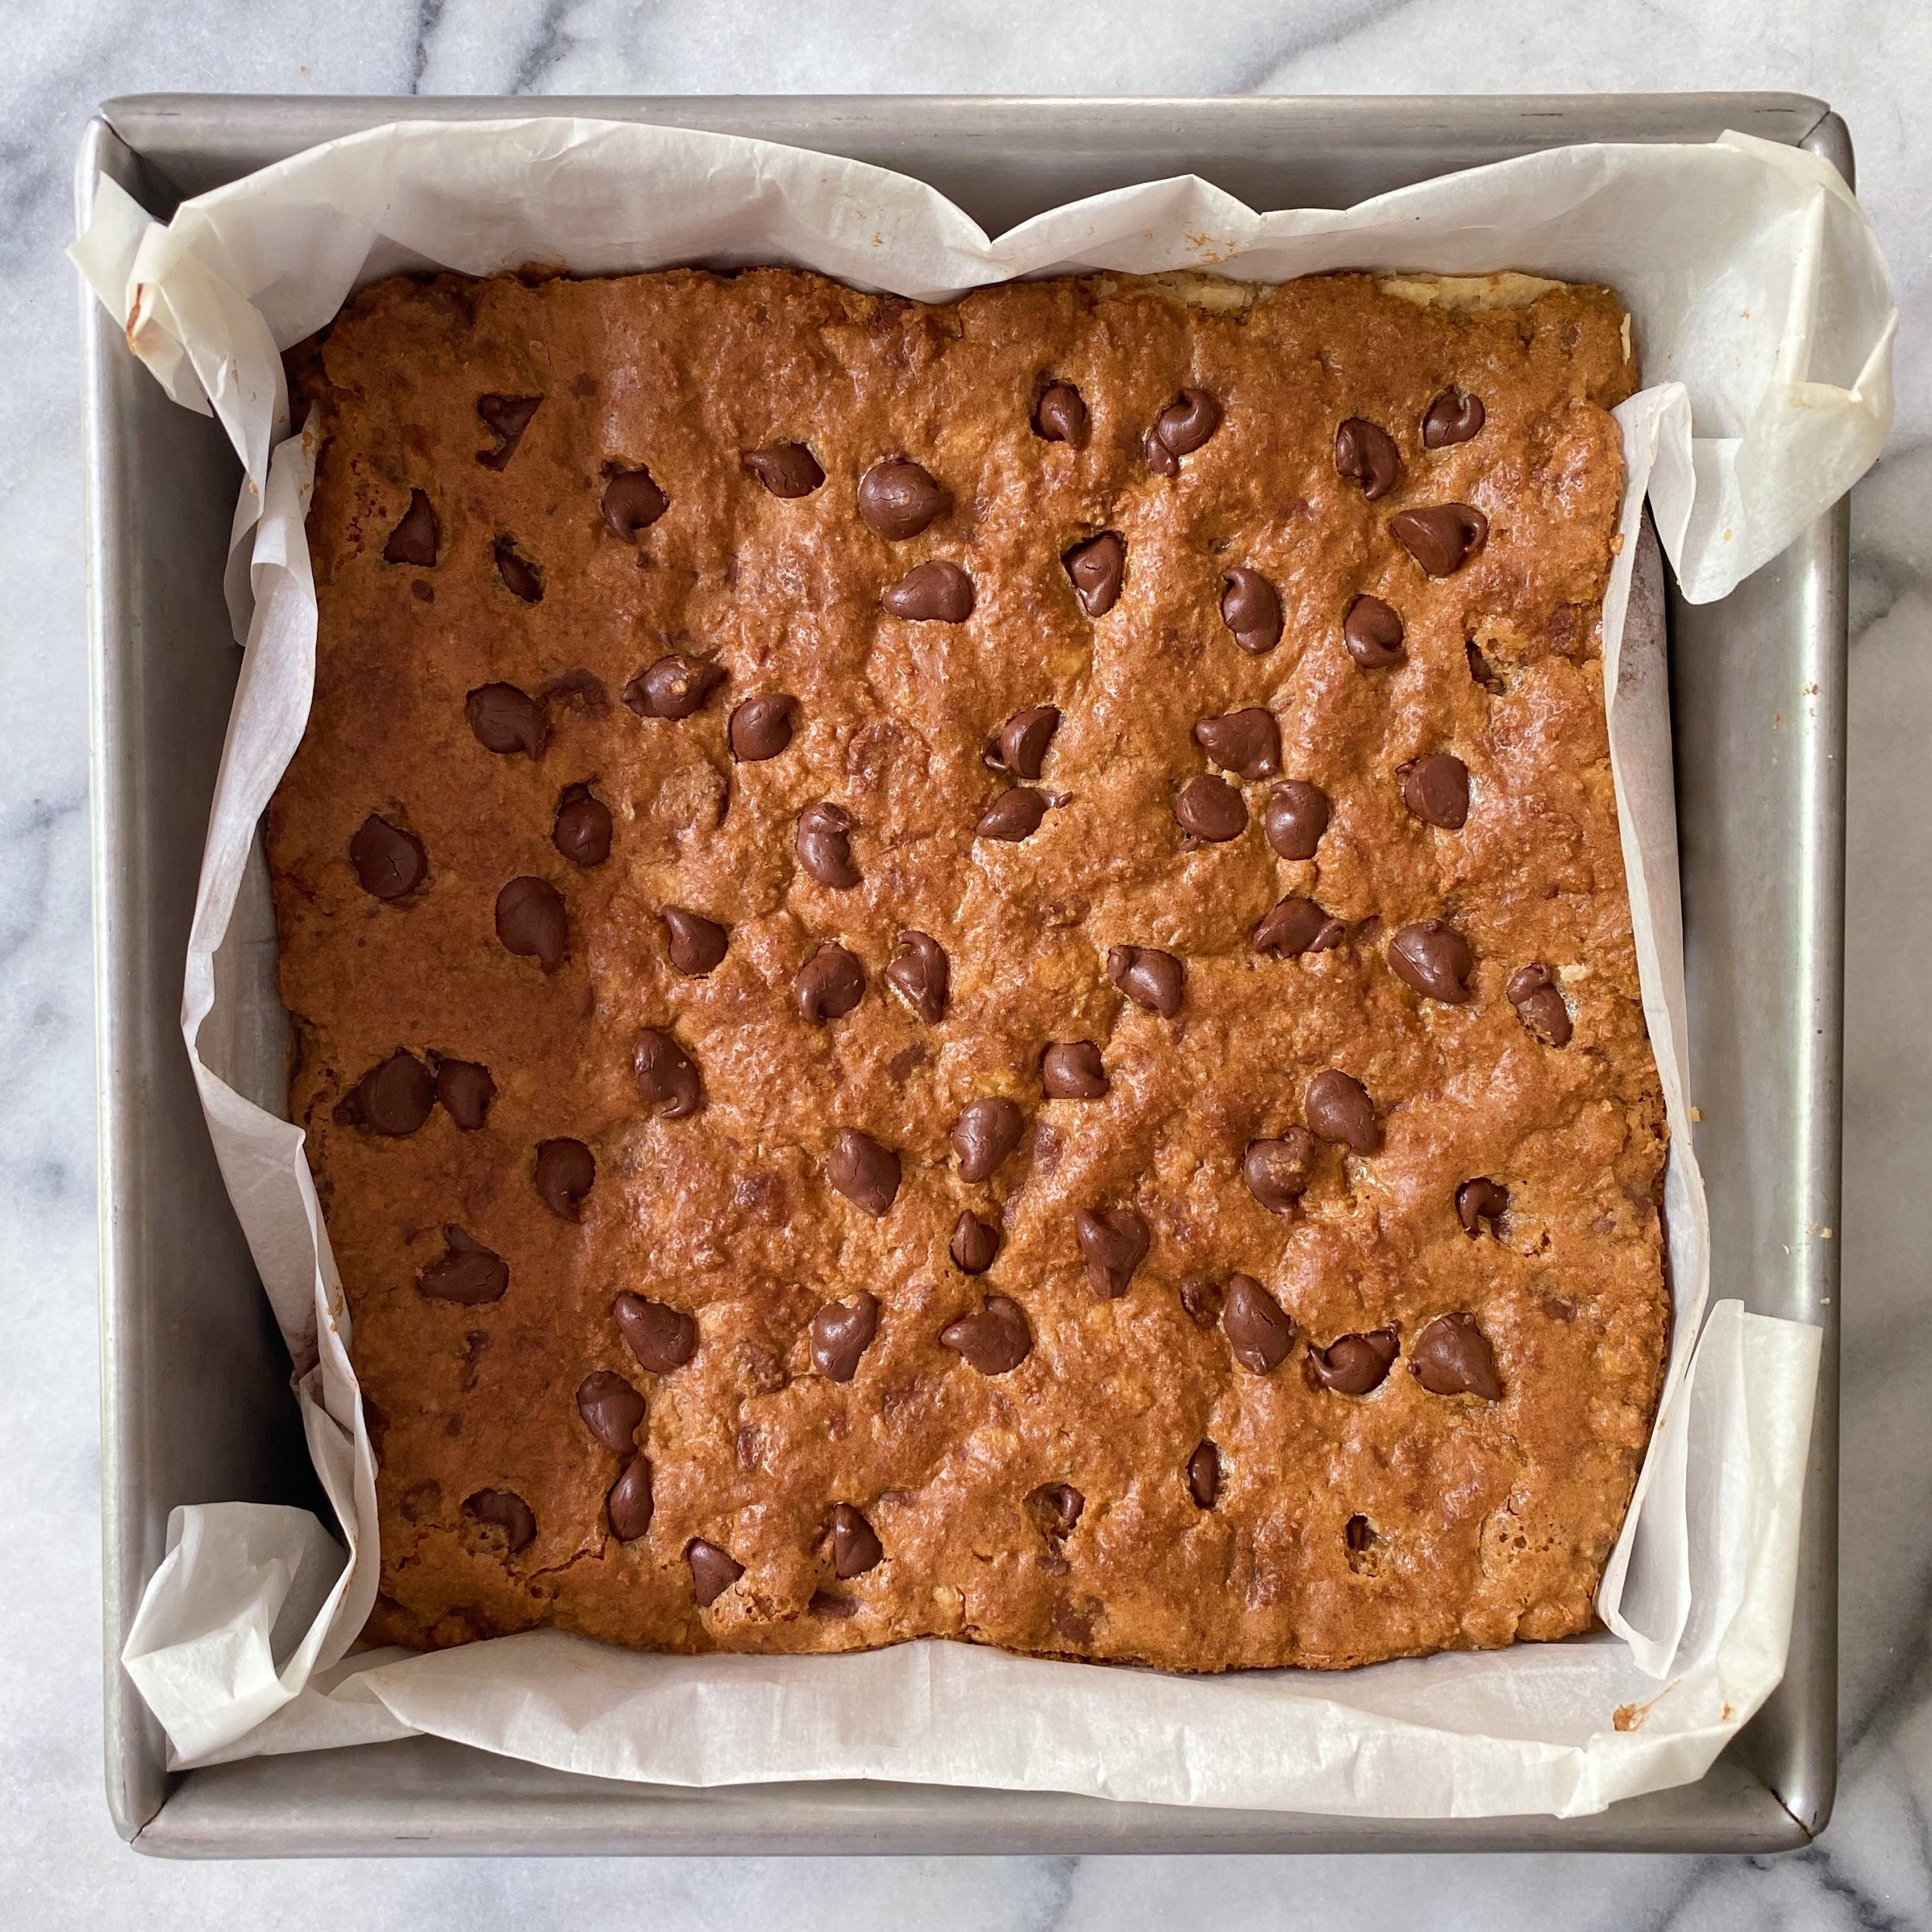 Chocolate Chip Dream Bars gluten free #glutenfreerecipes www.healthygffamily.com